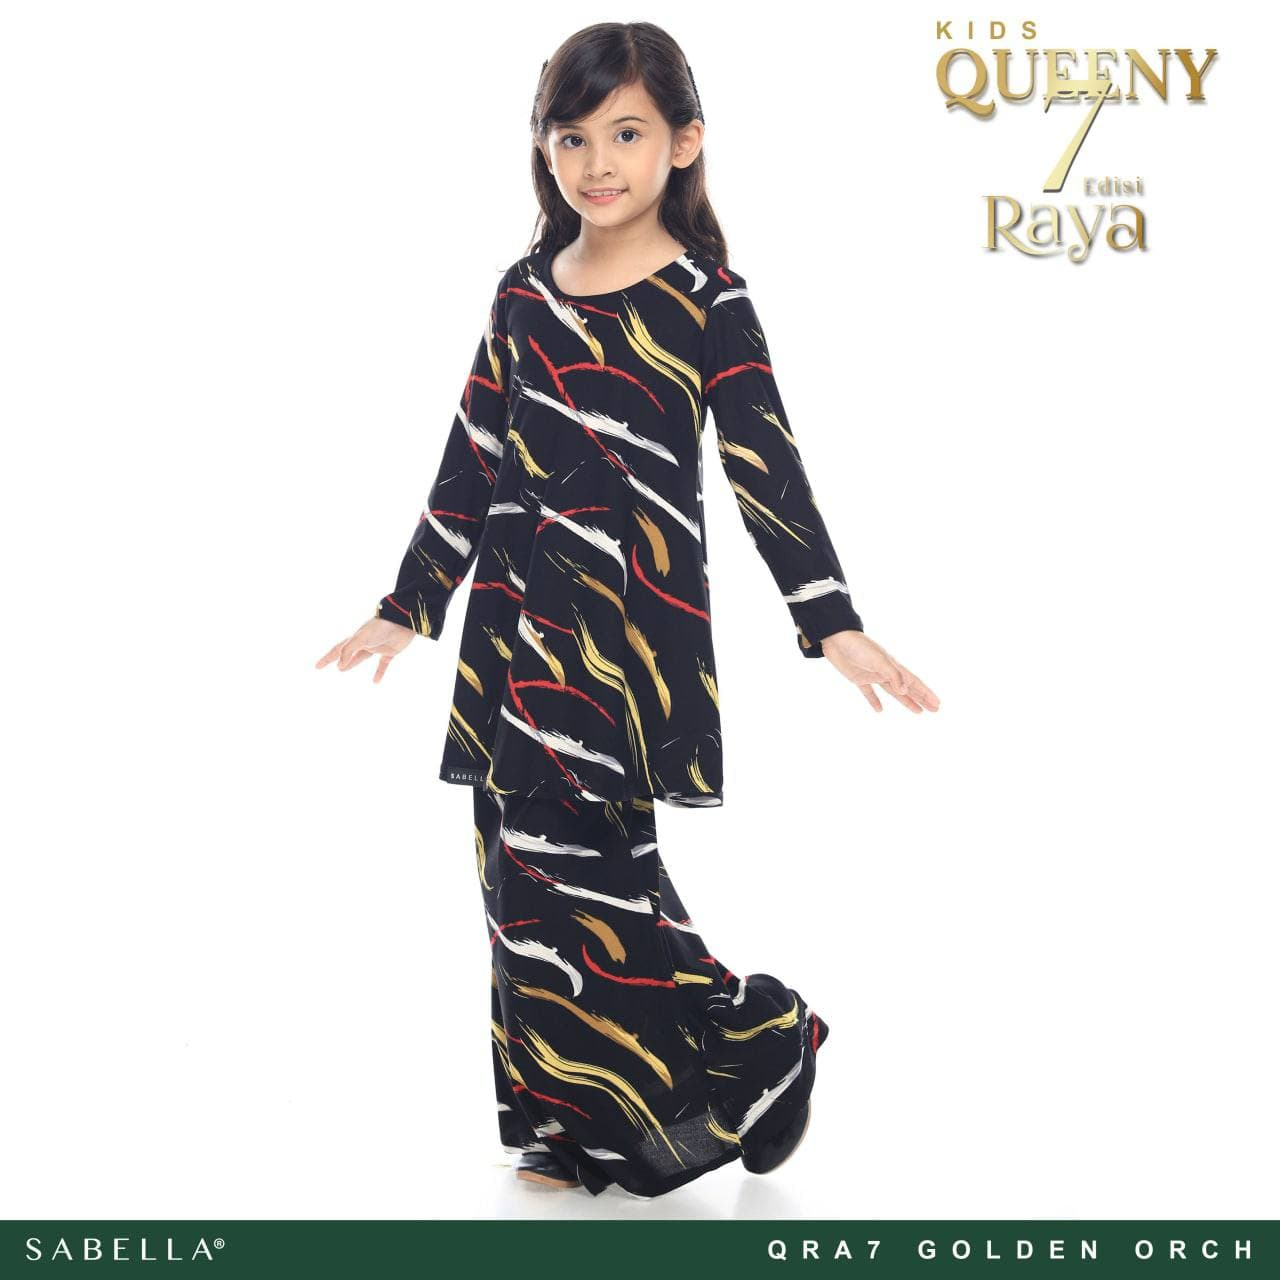 Queeny Raya 7.0 Kids Golden Orch